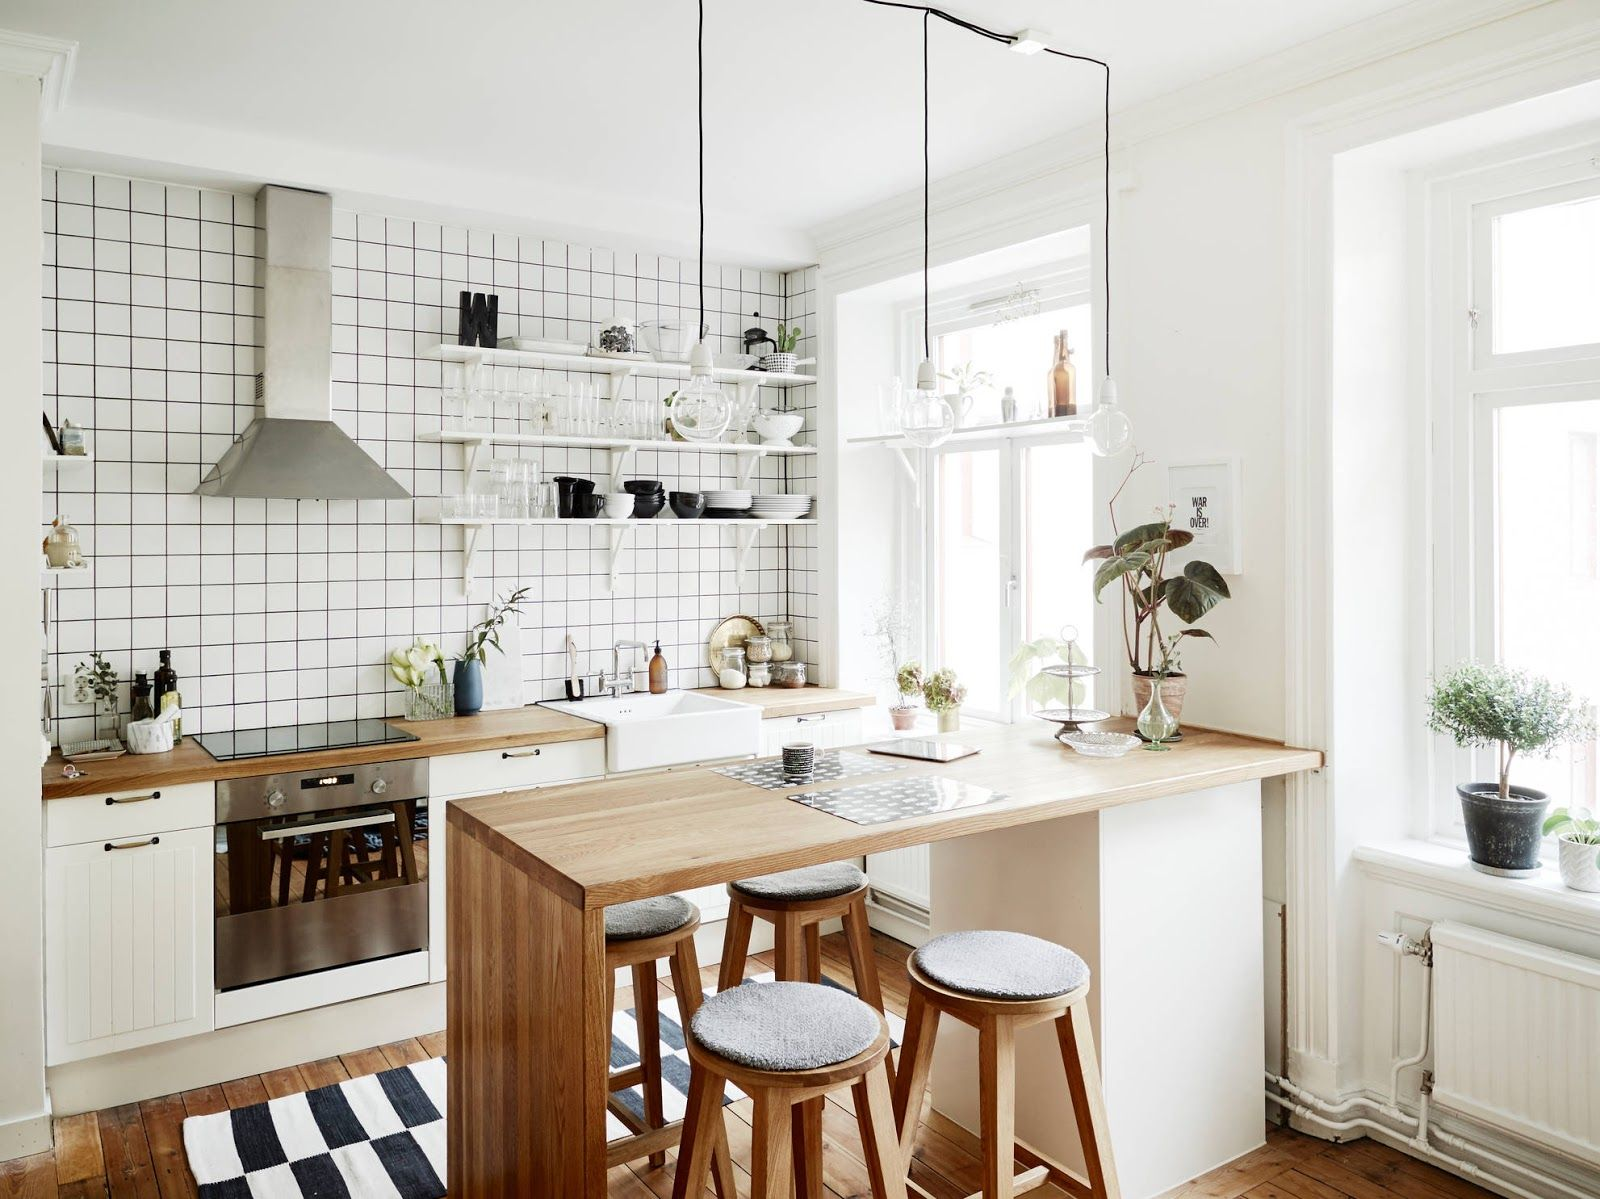 Kitchens For Small Flats 17 Best Ideas About Small Apartment Kitchen On Pinterest Tiny